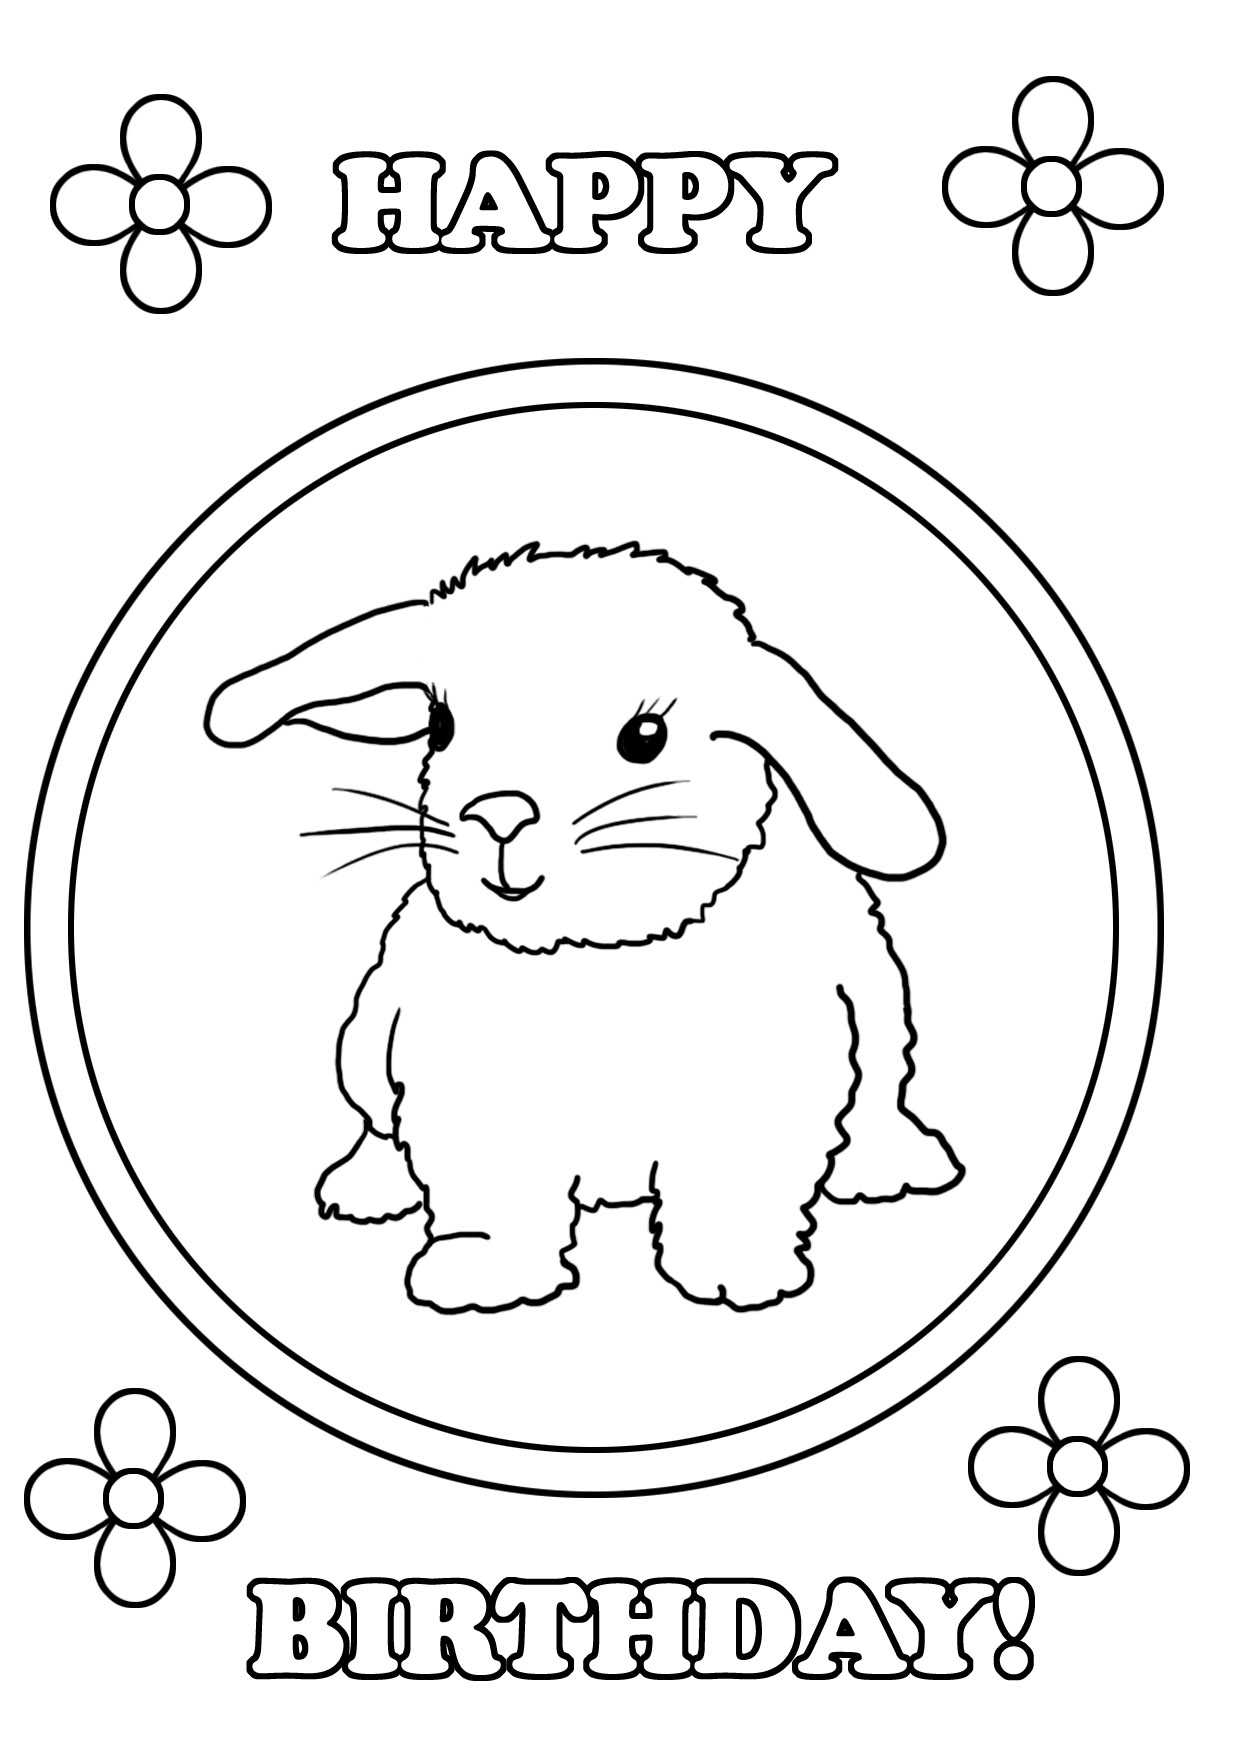 cute birthday coloring page with rabbit